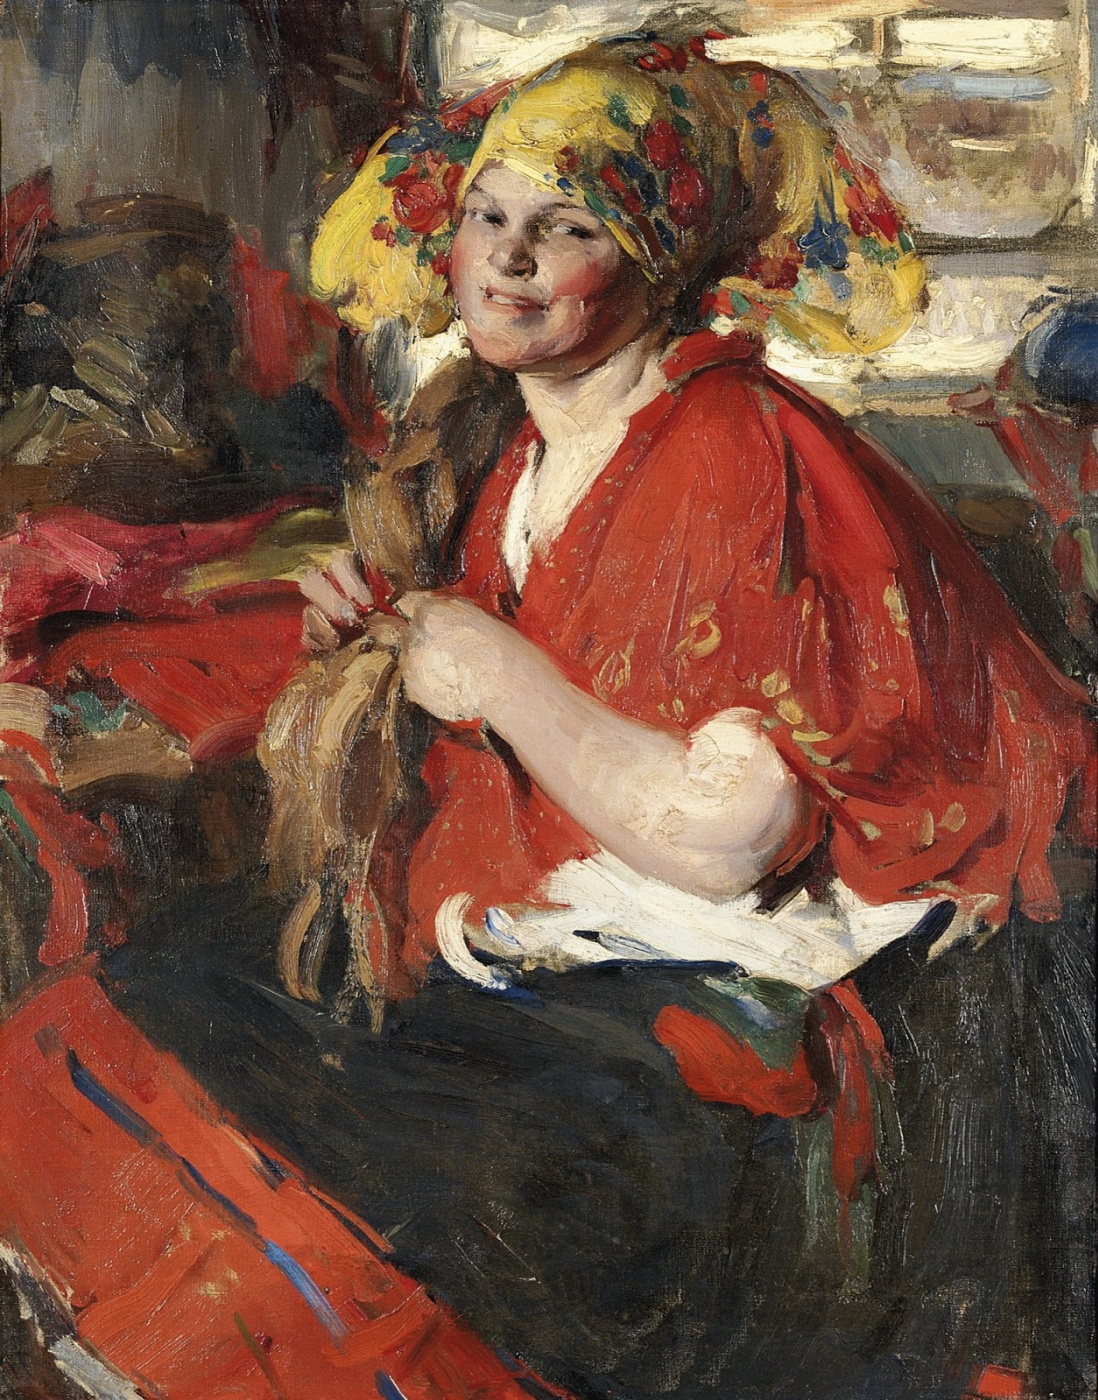 Abram Arkhipov. Peasant Woman in Red Shawl